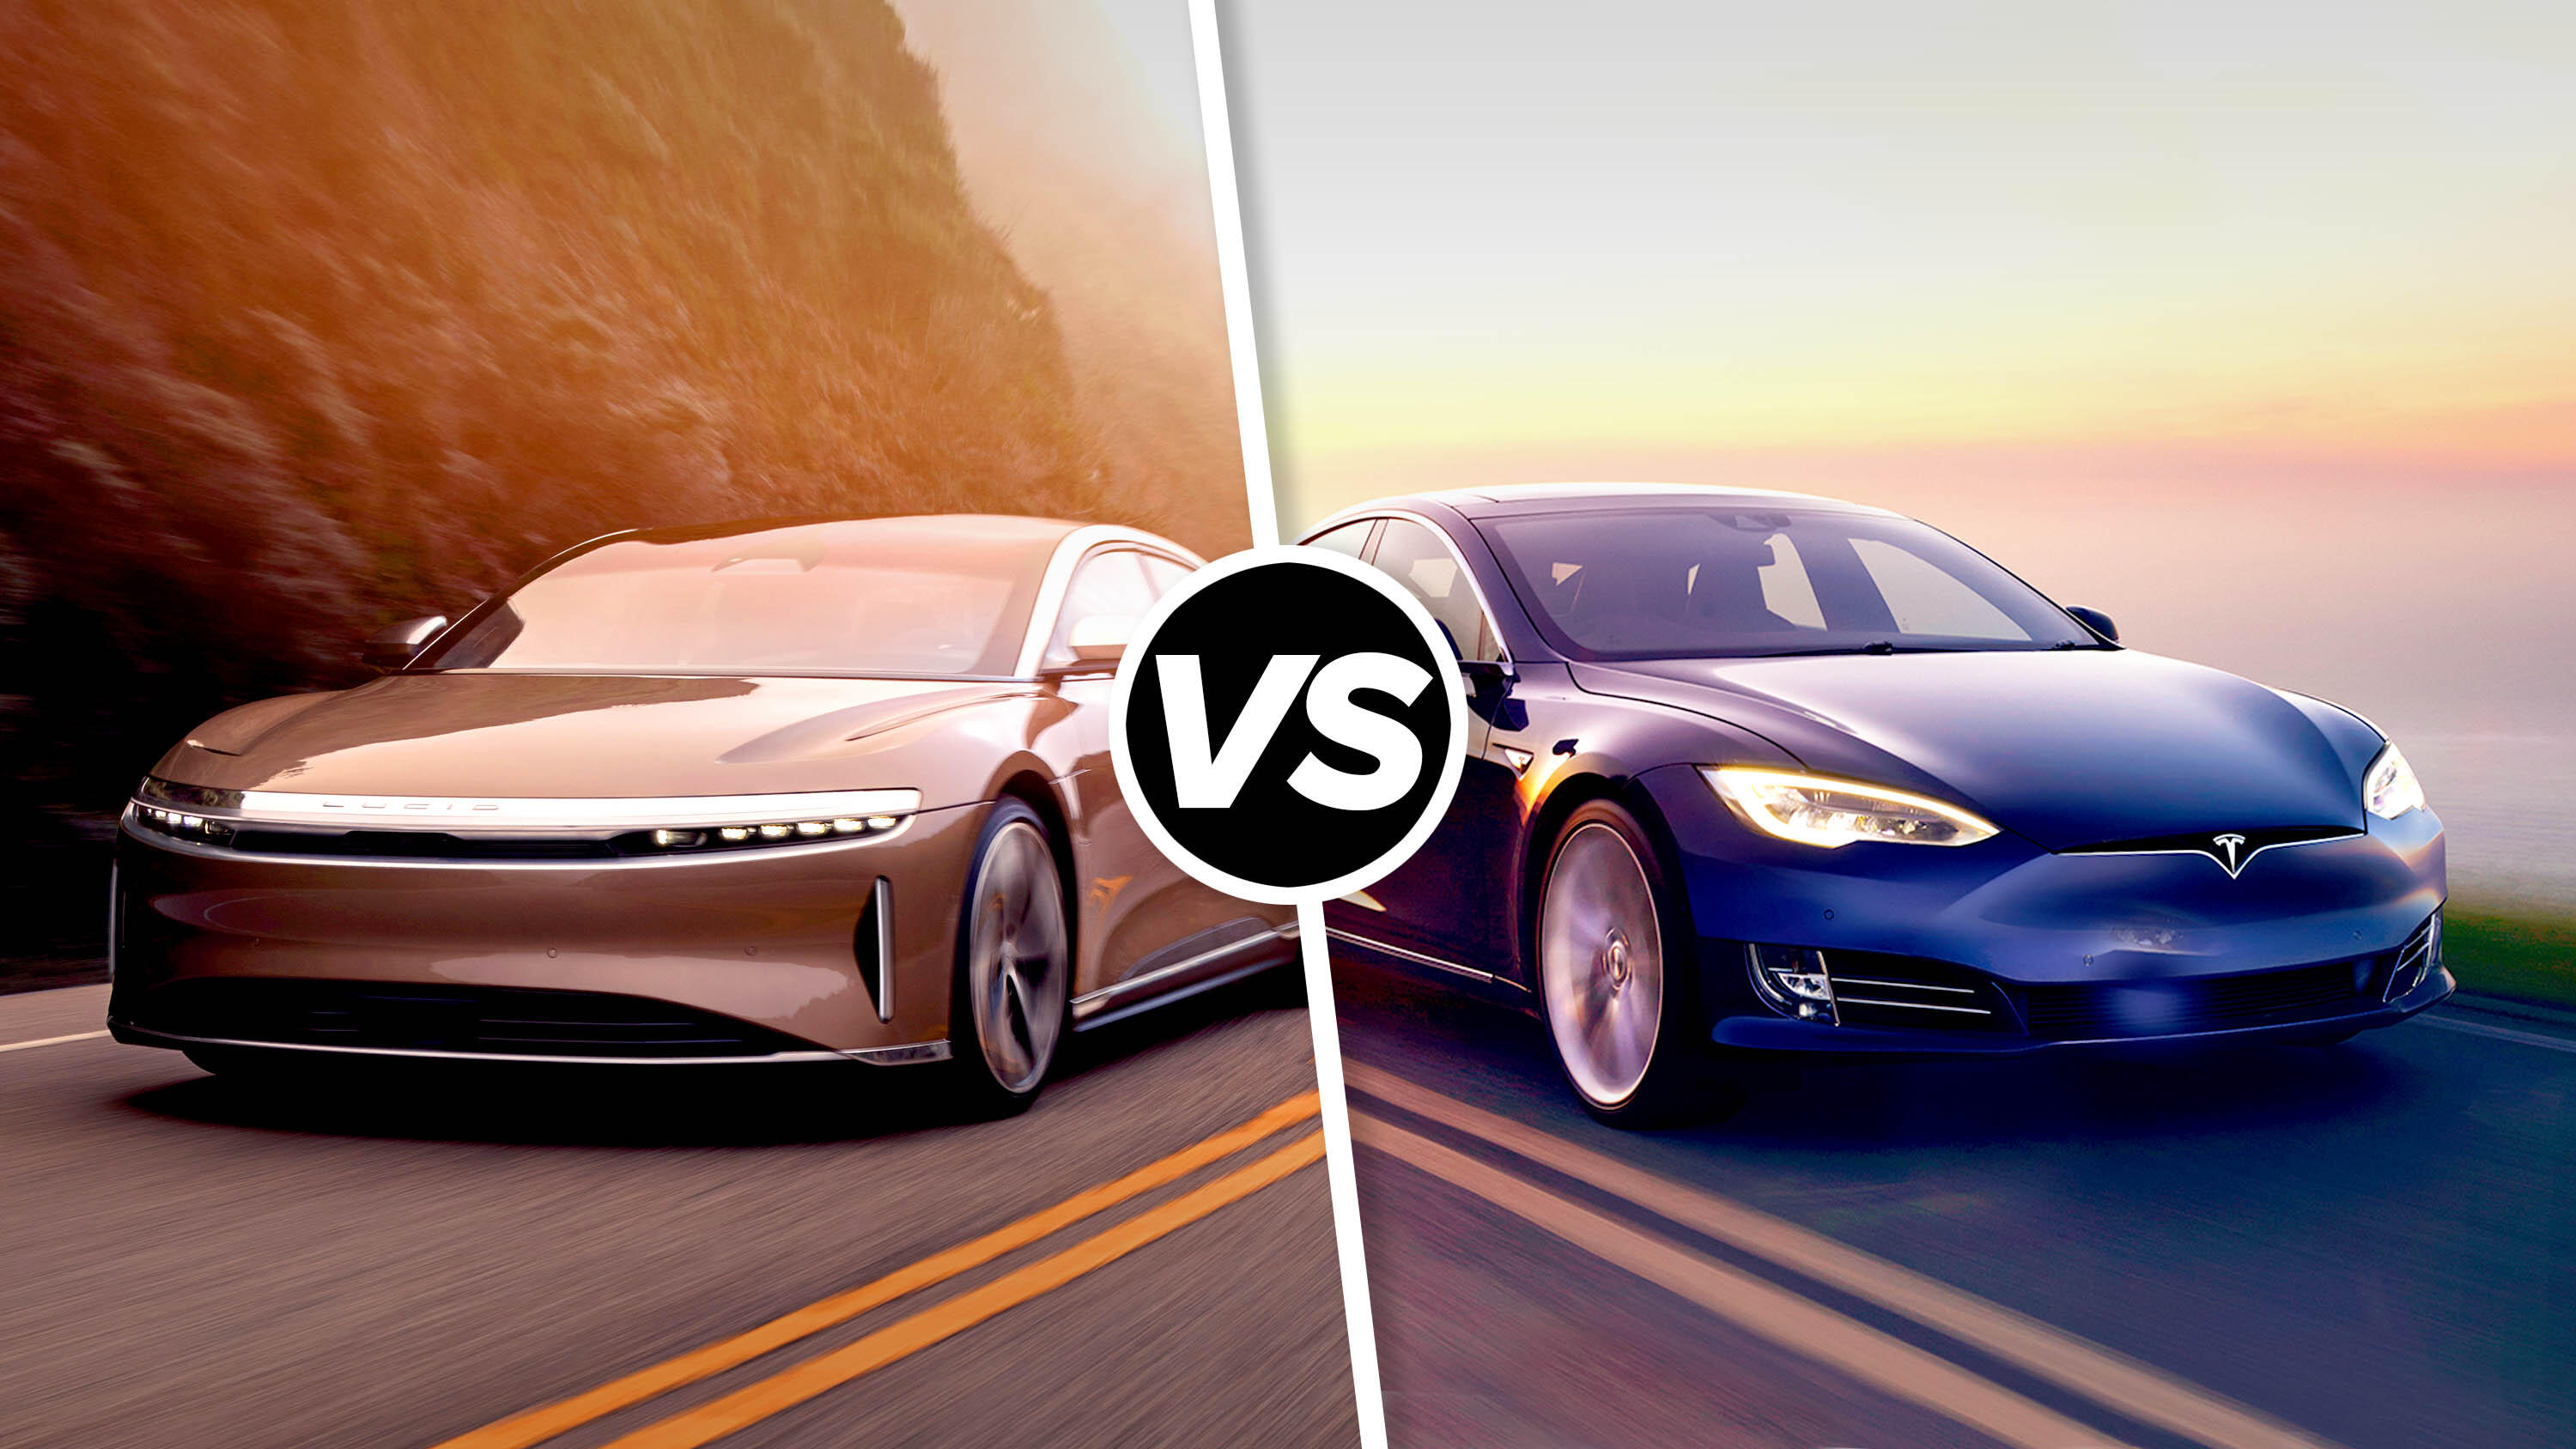 Video: 2021 Lucid Air vs. Tesla Model S: EVs go head-to-head